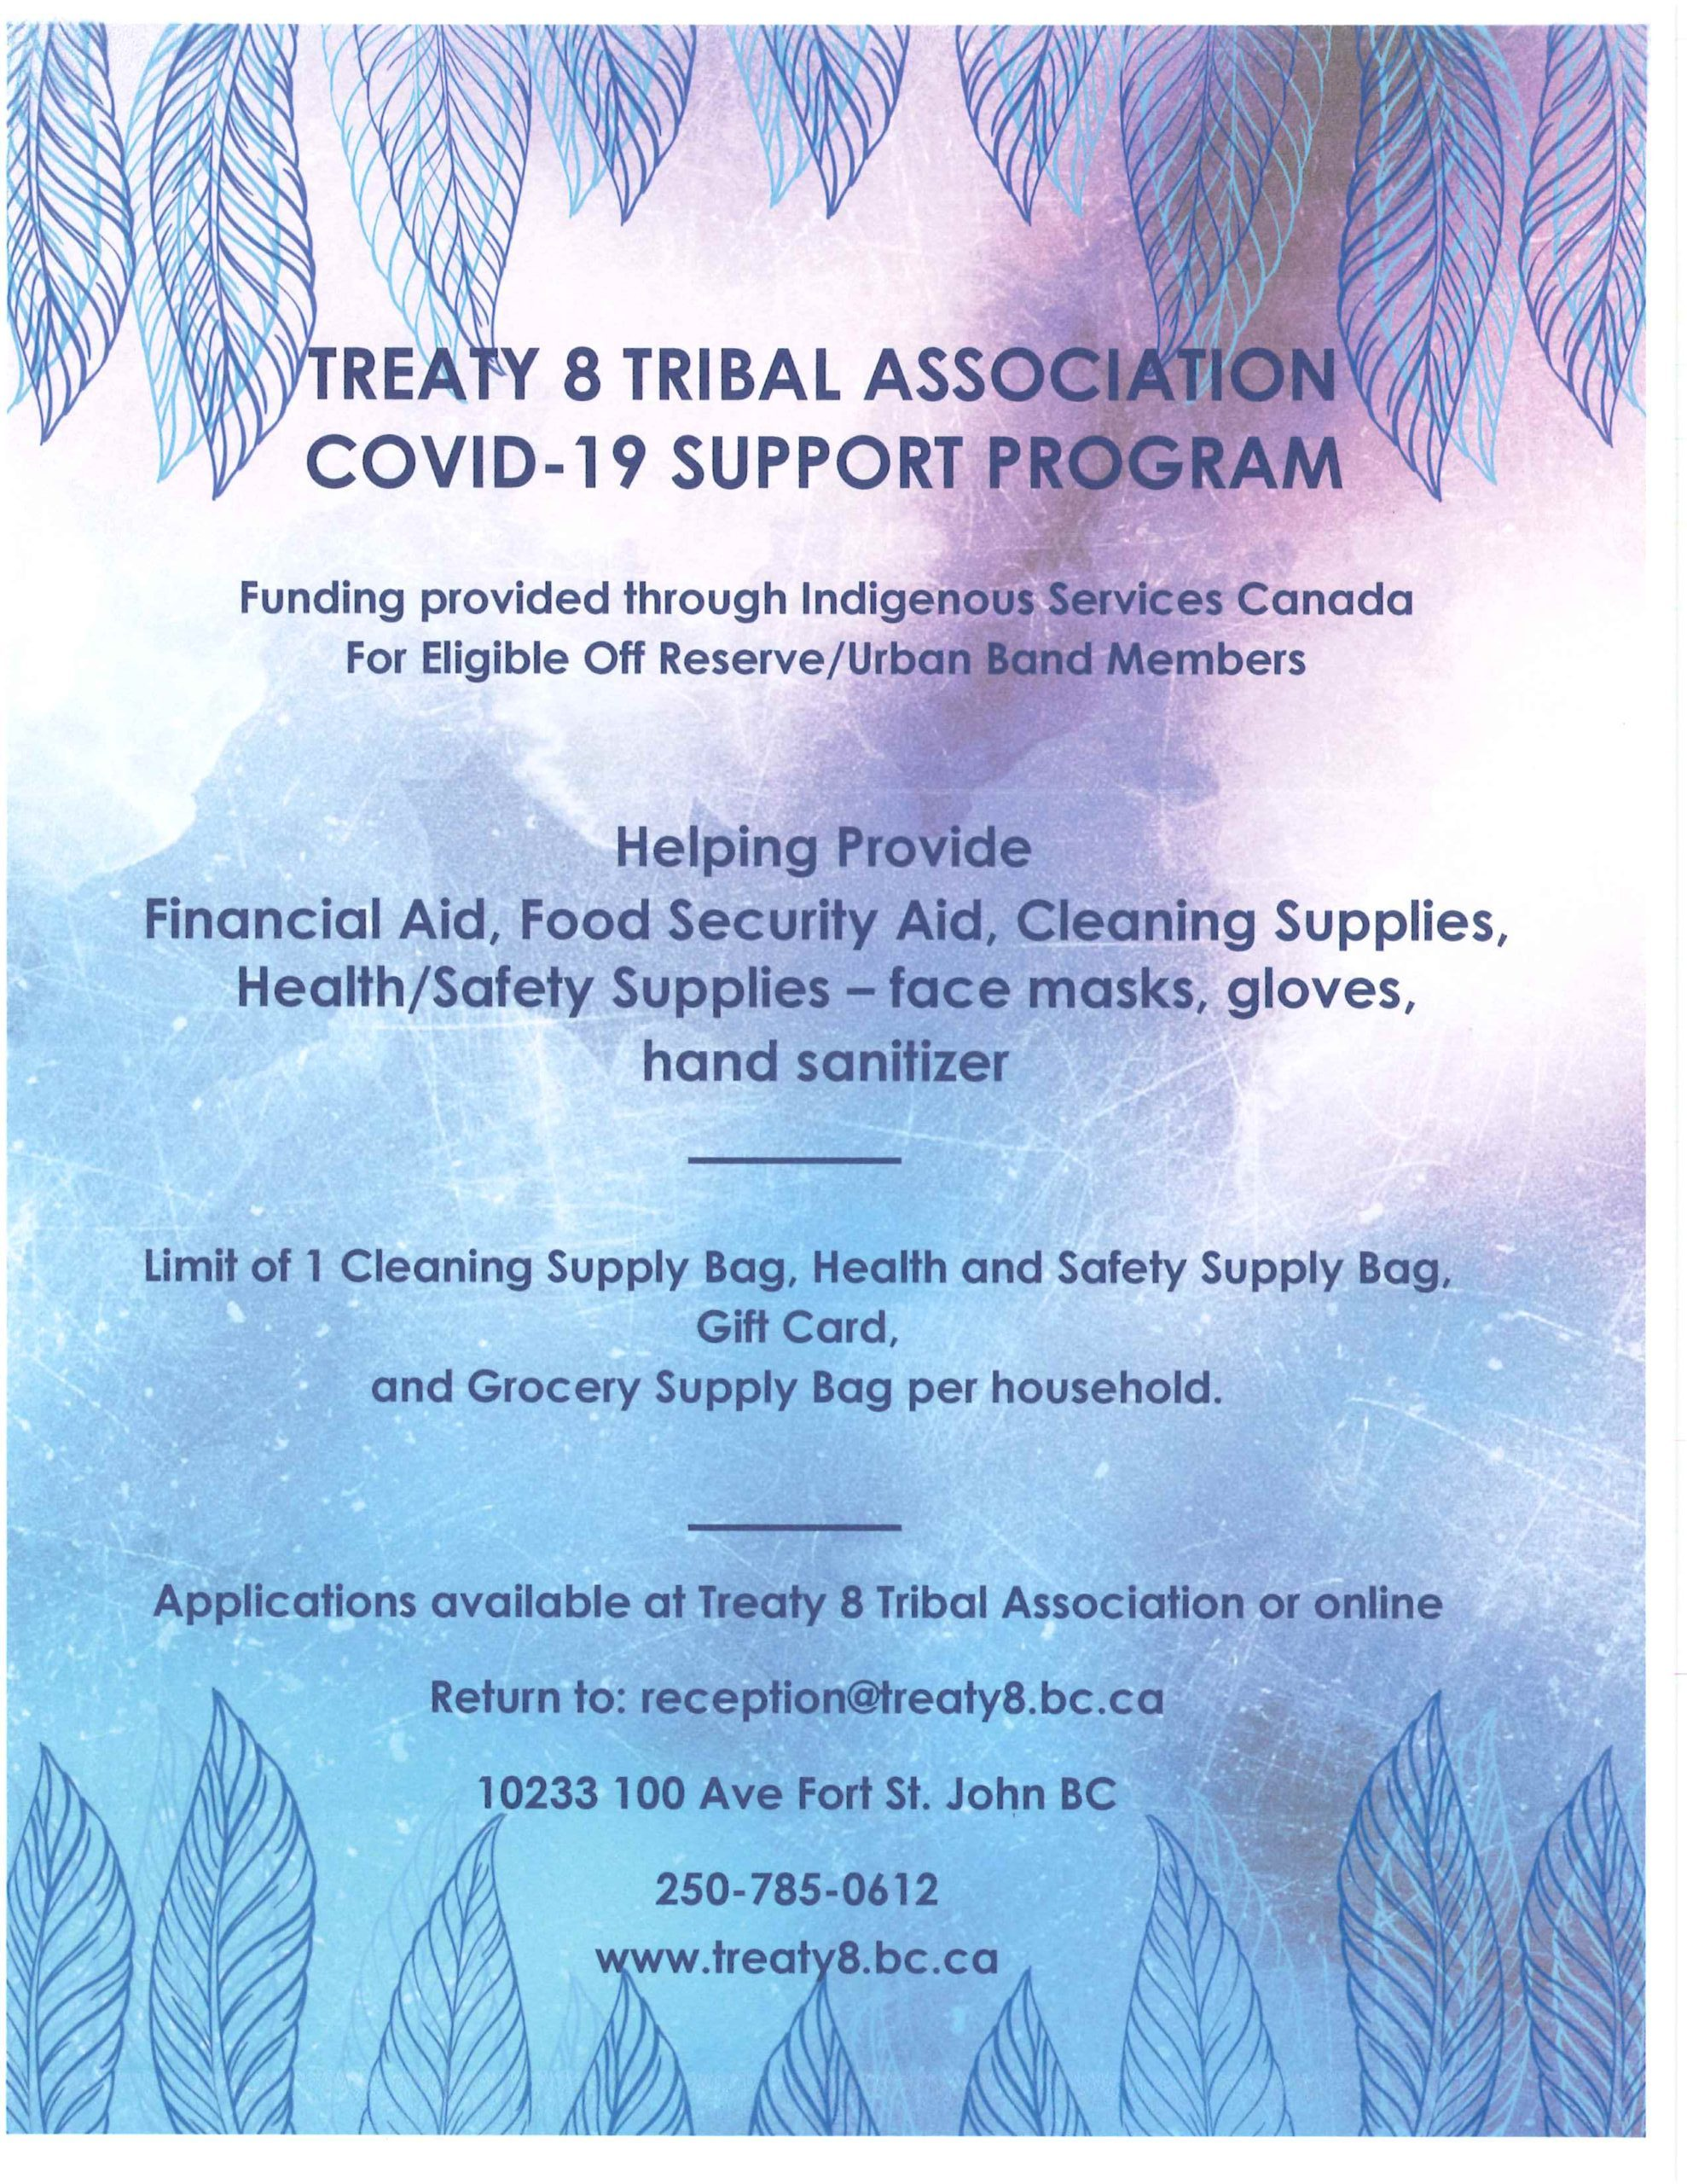 COVID-19 SUPPORT PROGRAM @ Treaty 8 Tribal Association